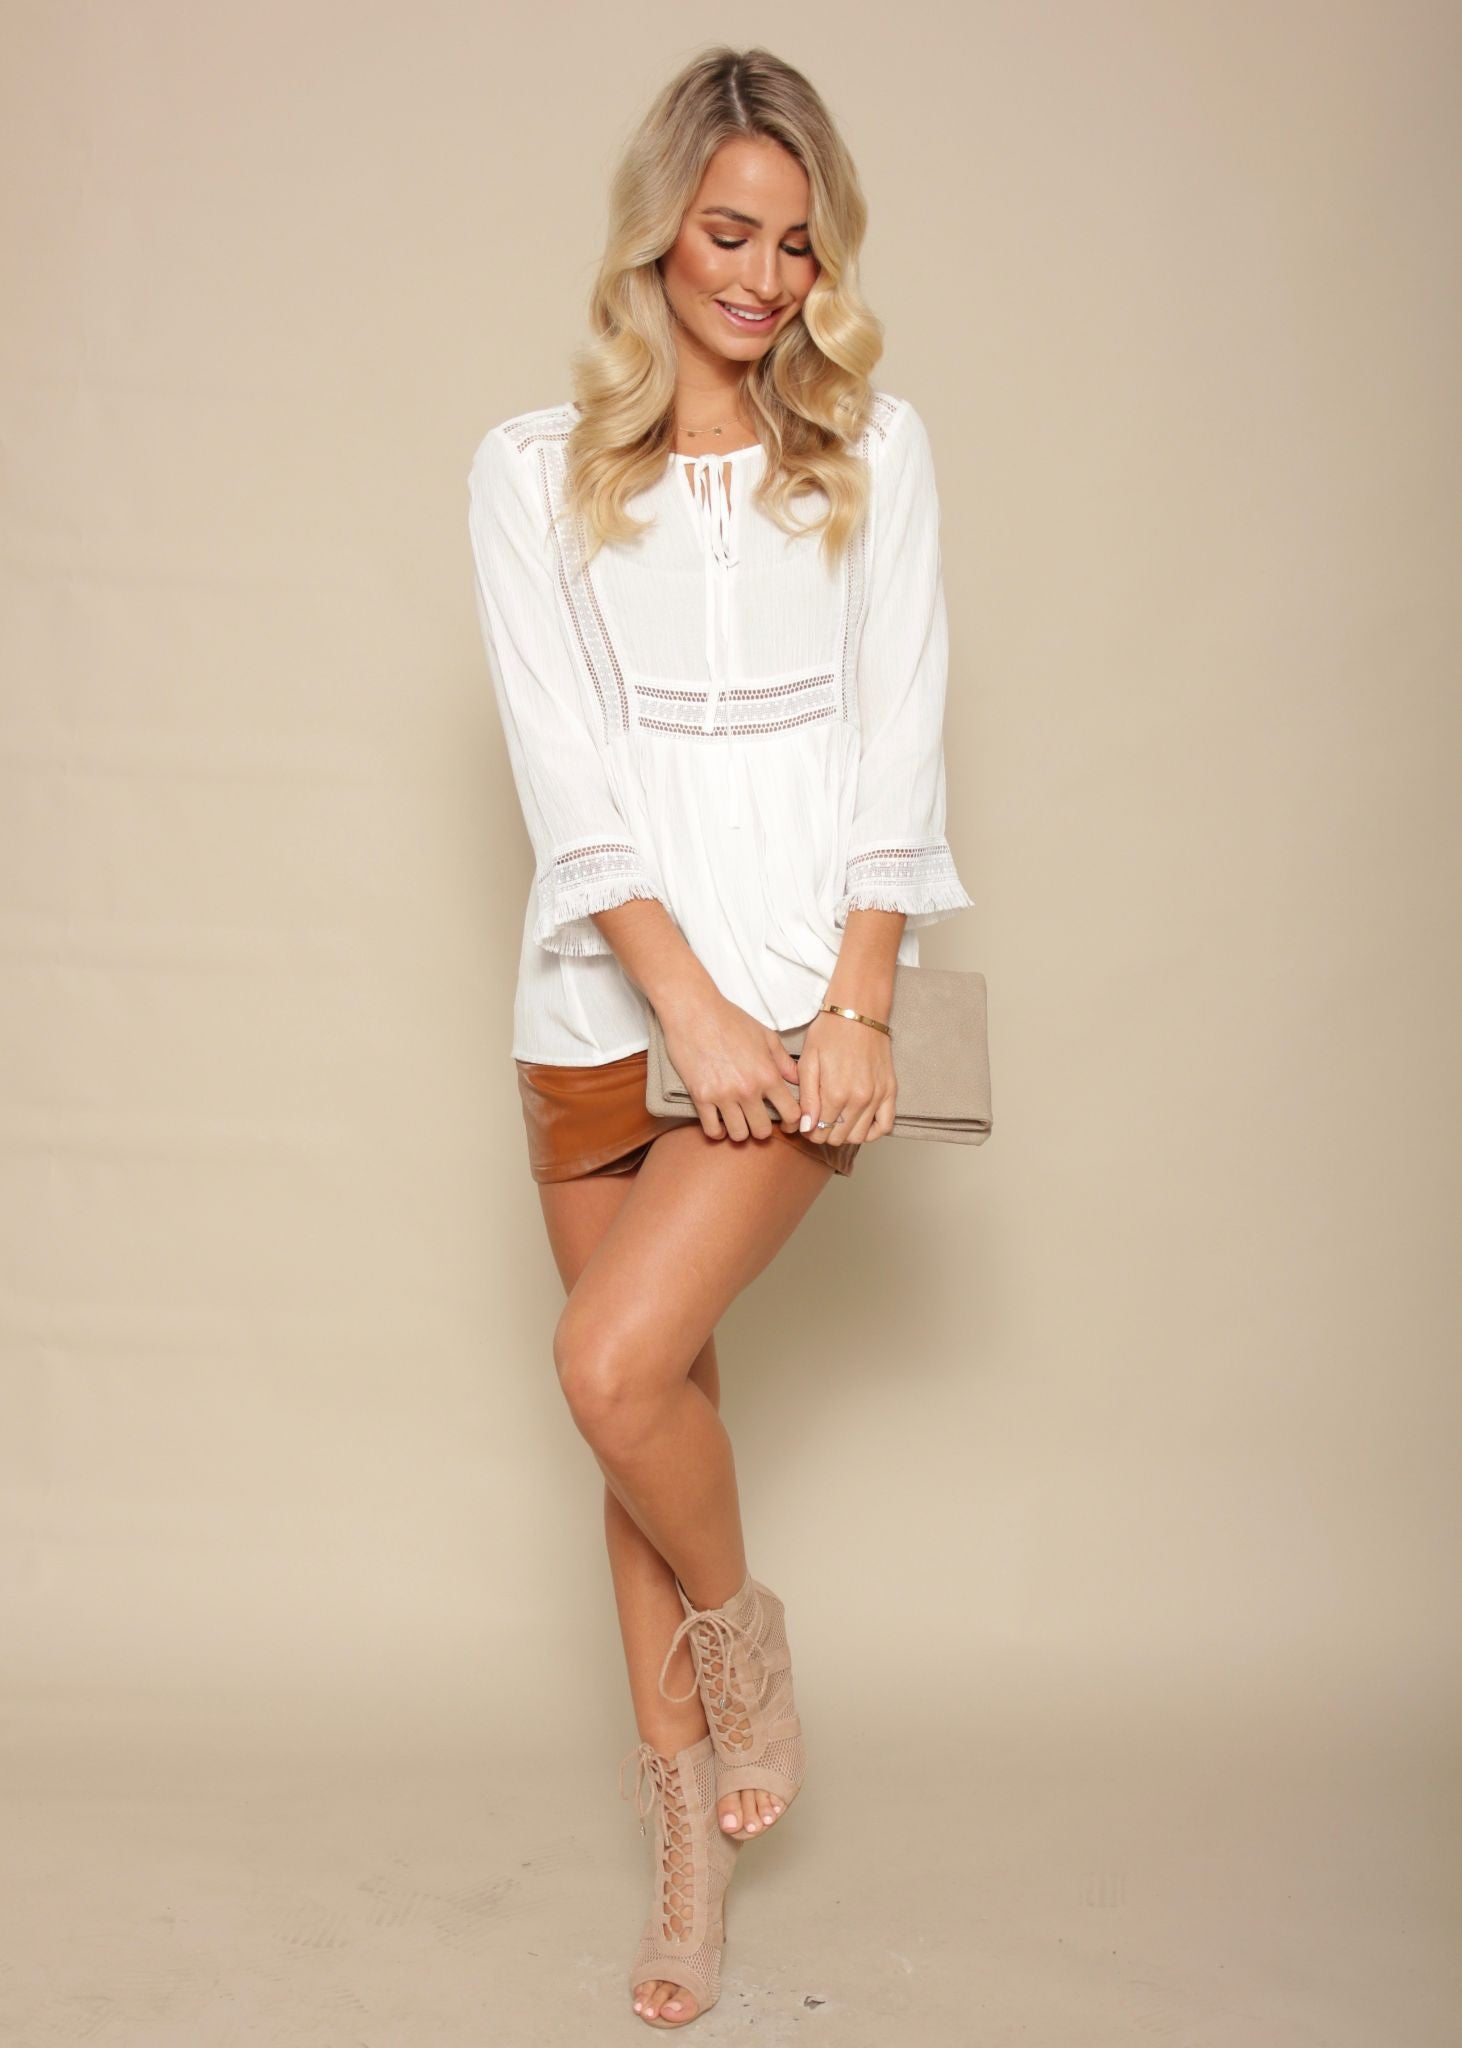 Calypso Beach Blouse - White